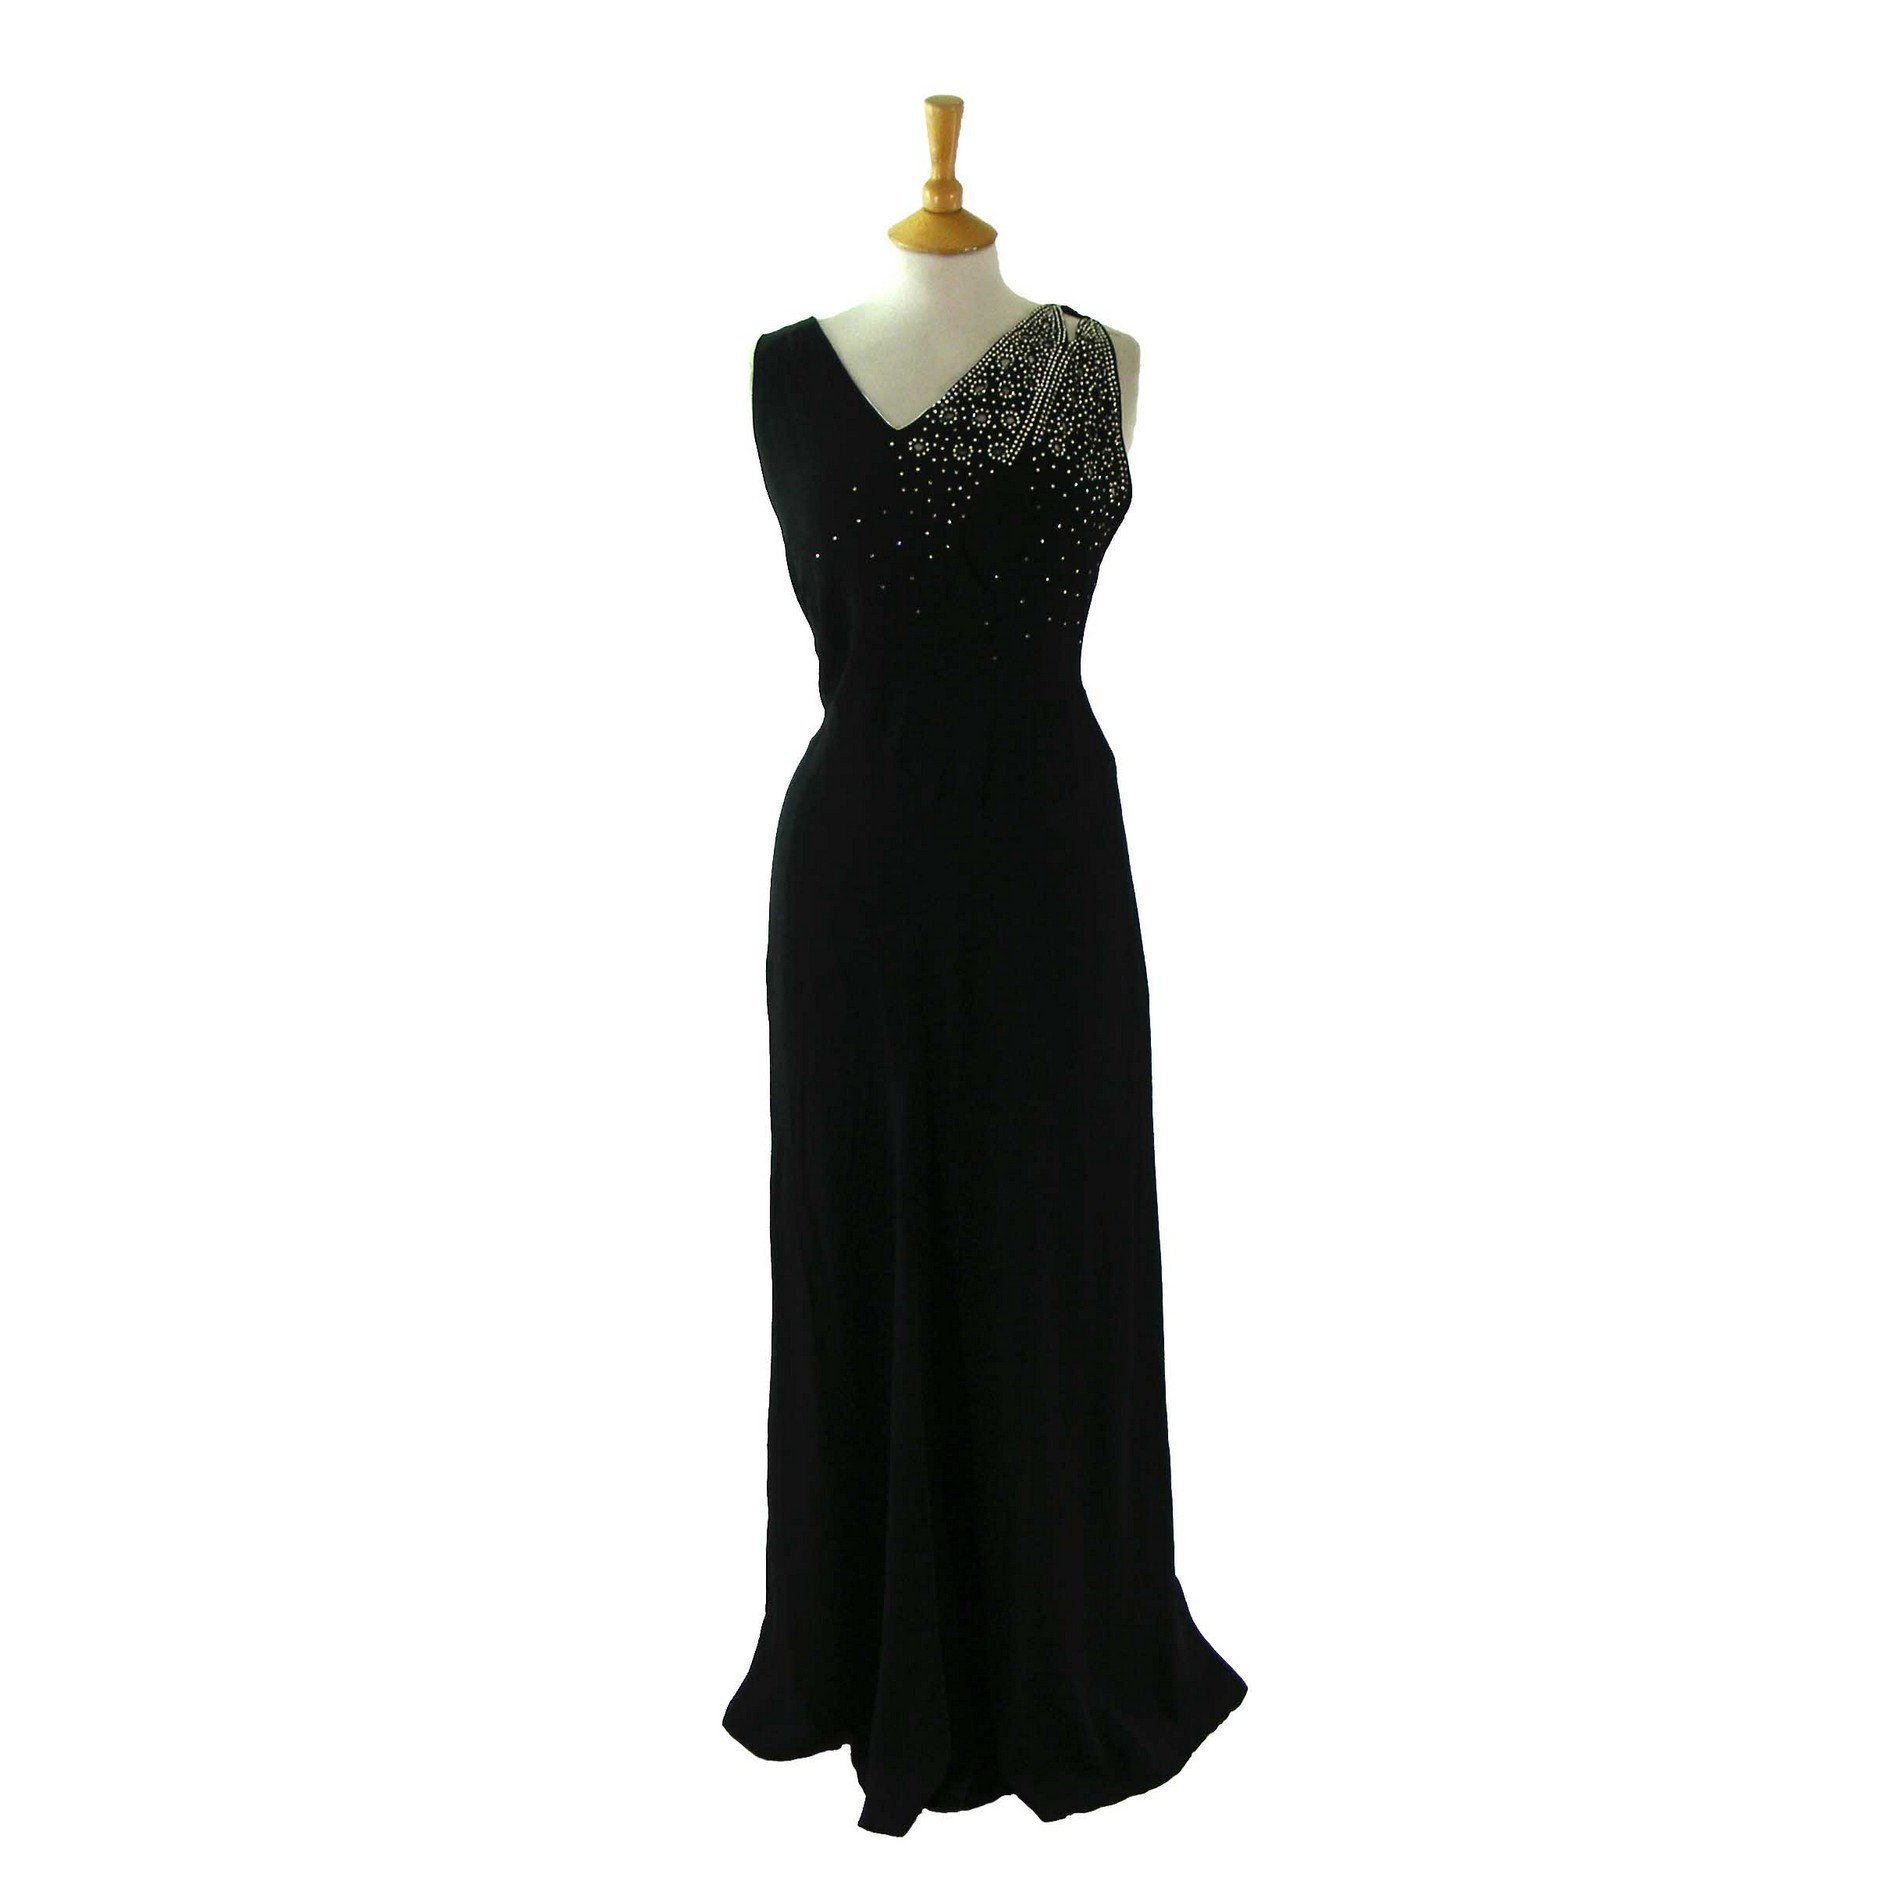 Full Length 1940s Evening Dress - Vintage Clothing - Blue 17